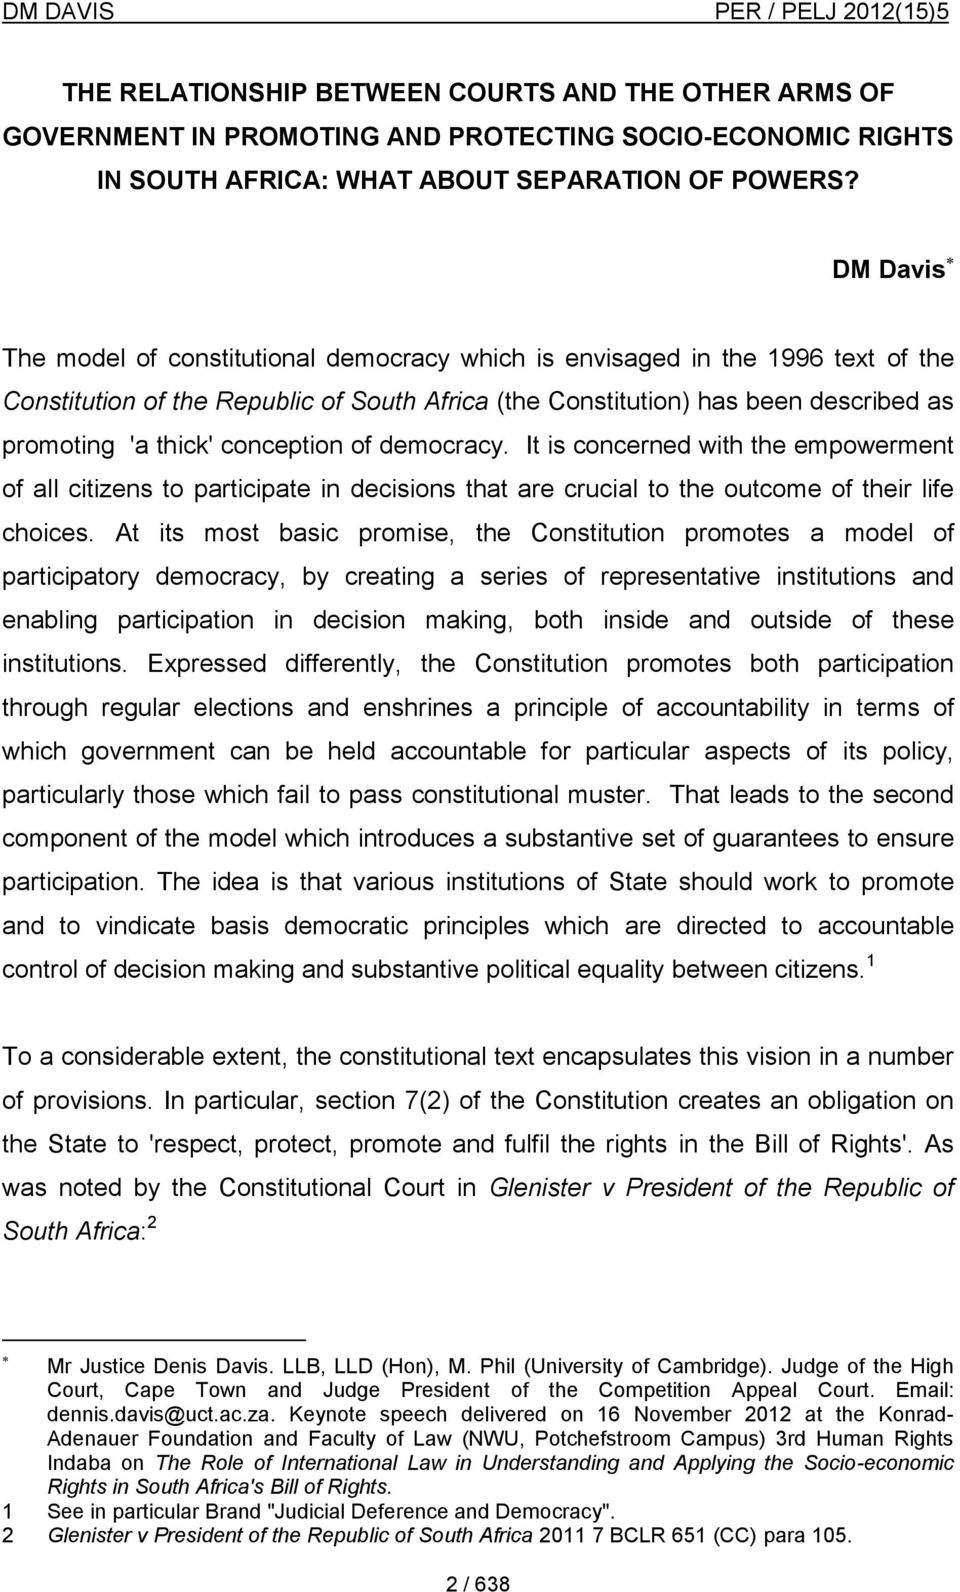 conception of democracy. It is concerned with the empowerment of all citizens to participate in decisions that are crucial to the outcome of their life choices.